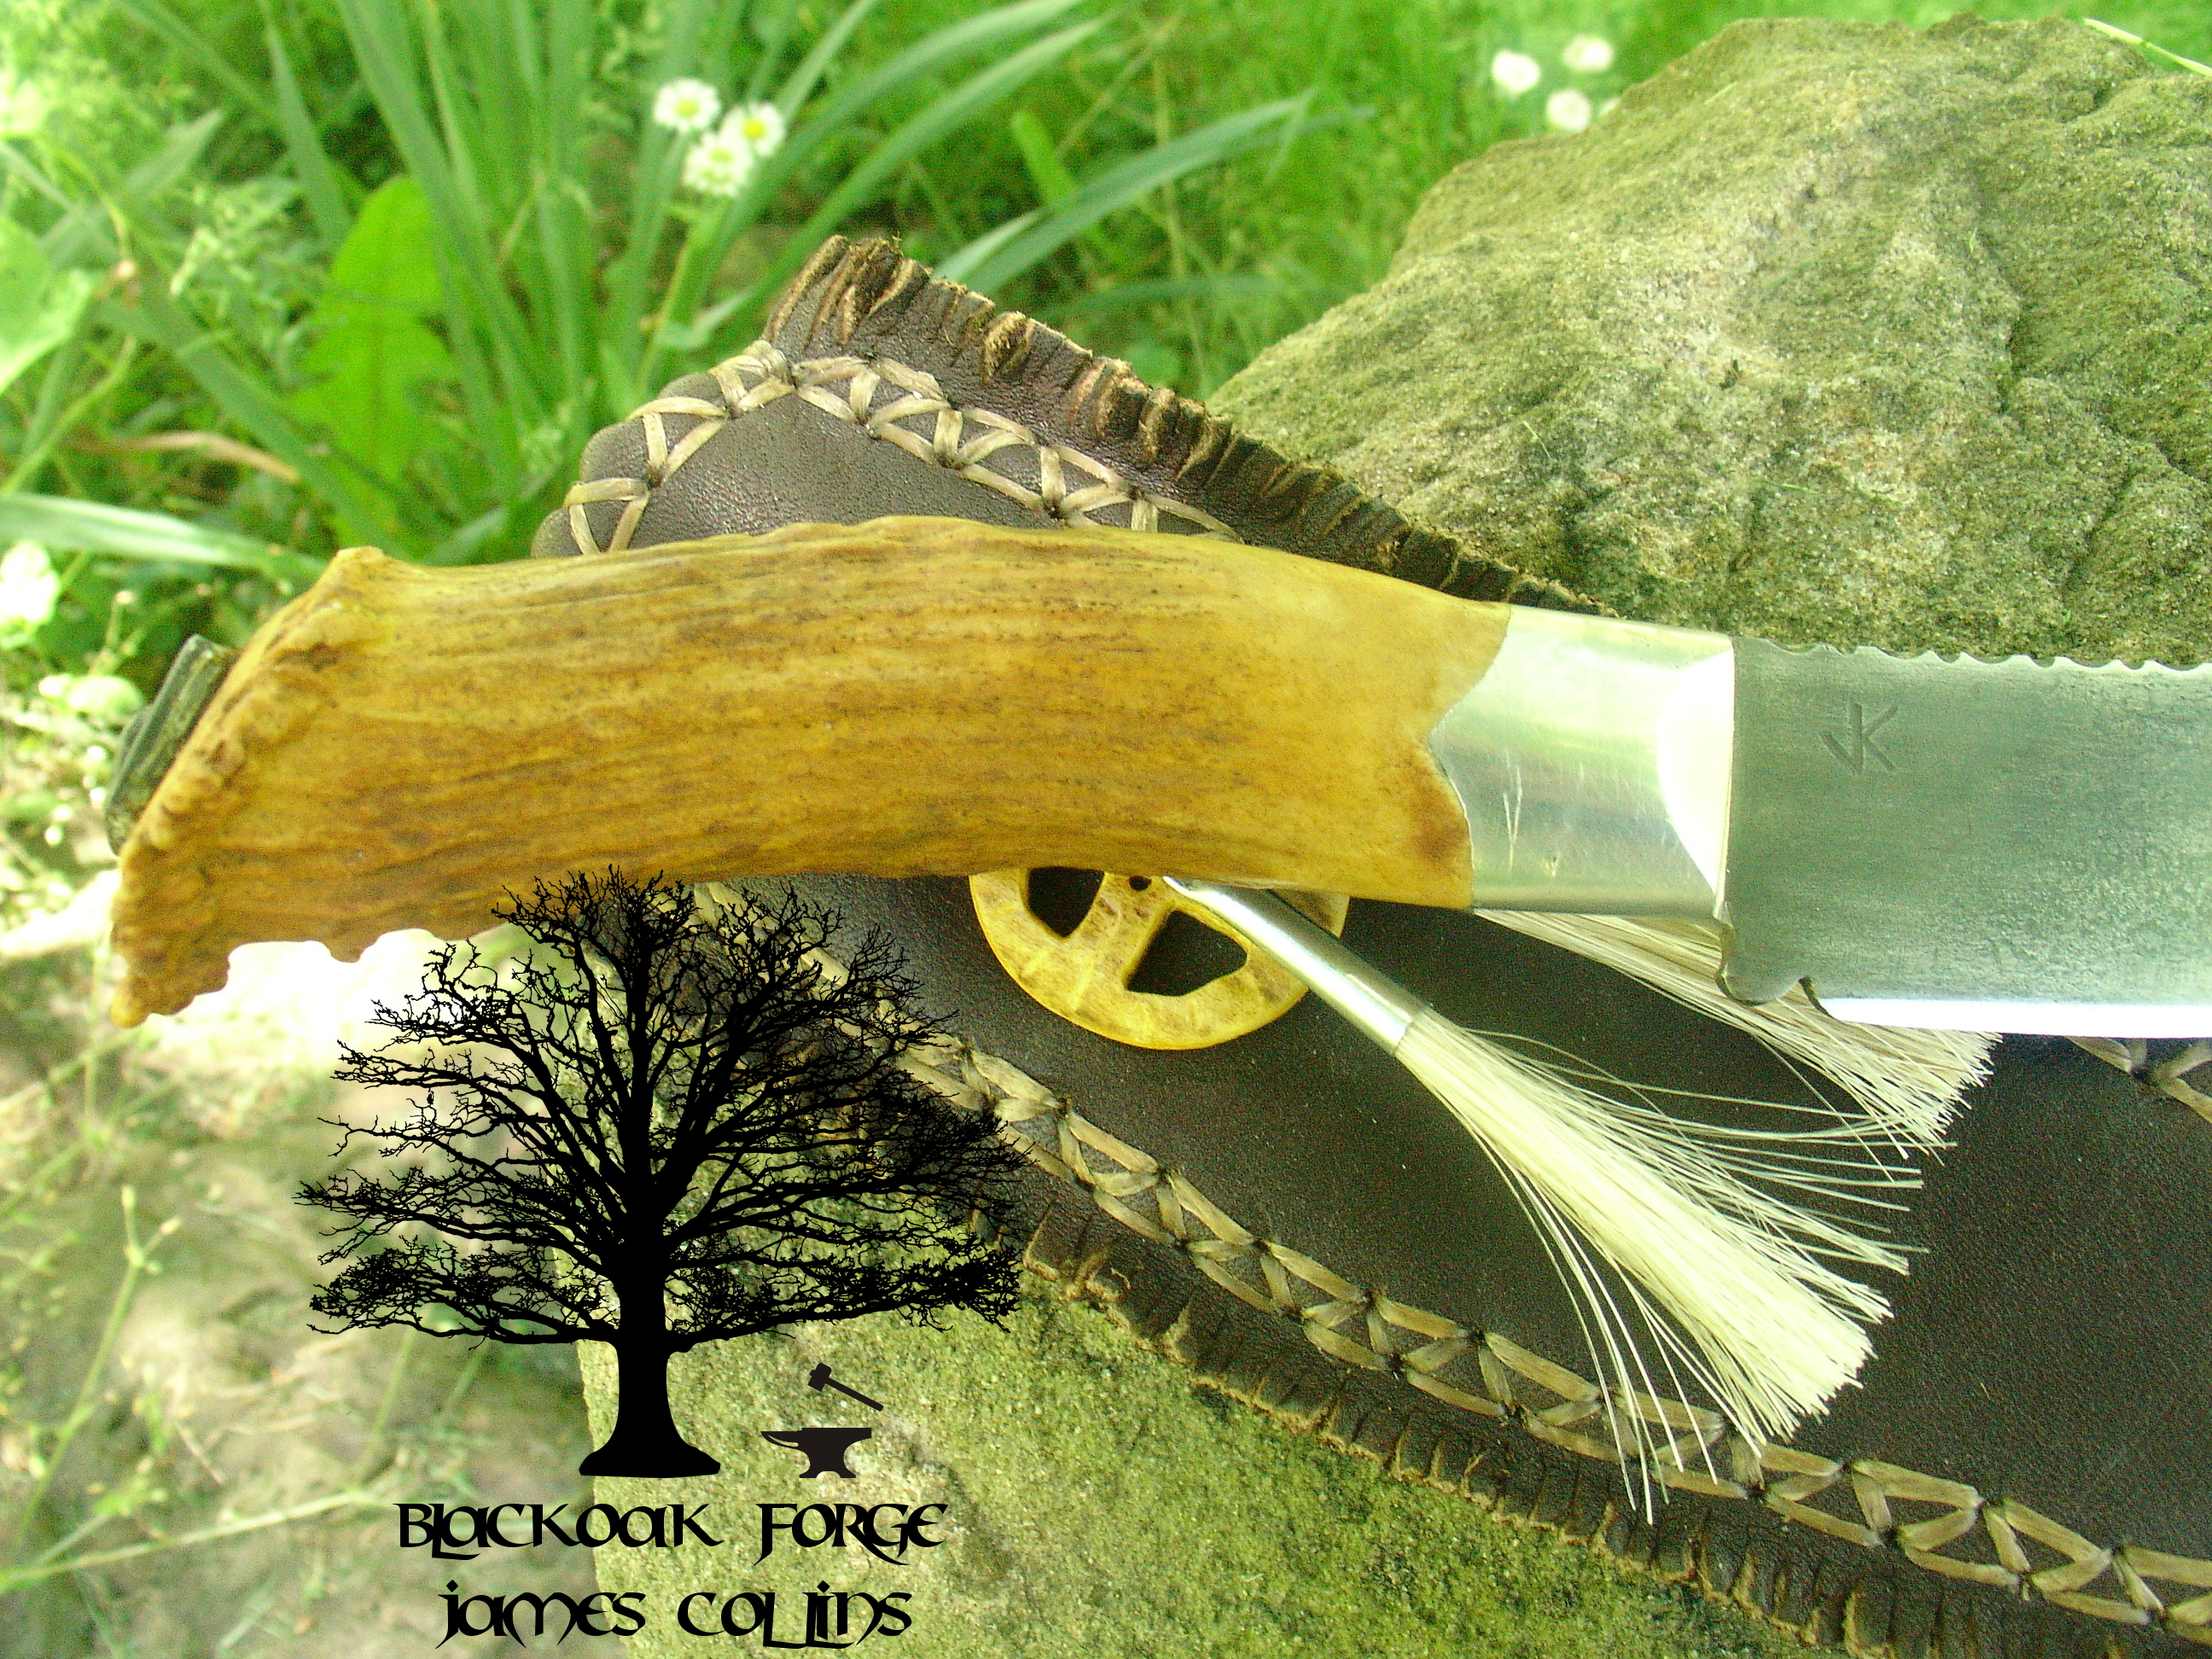 Medicine Wheel Frontier Knife by James Collins Blackoak Forge